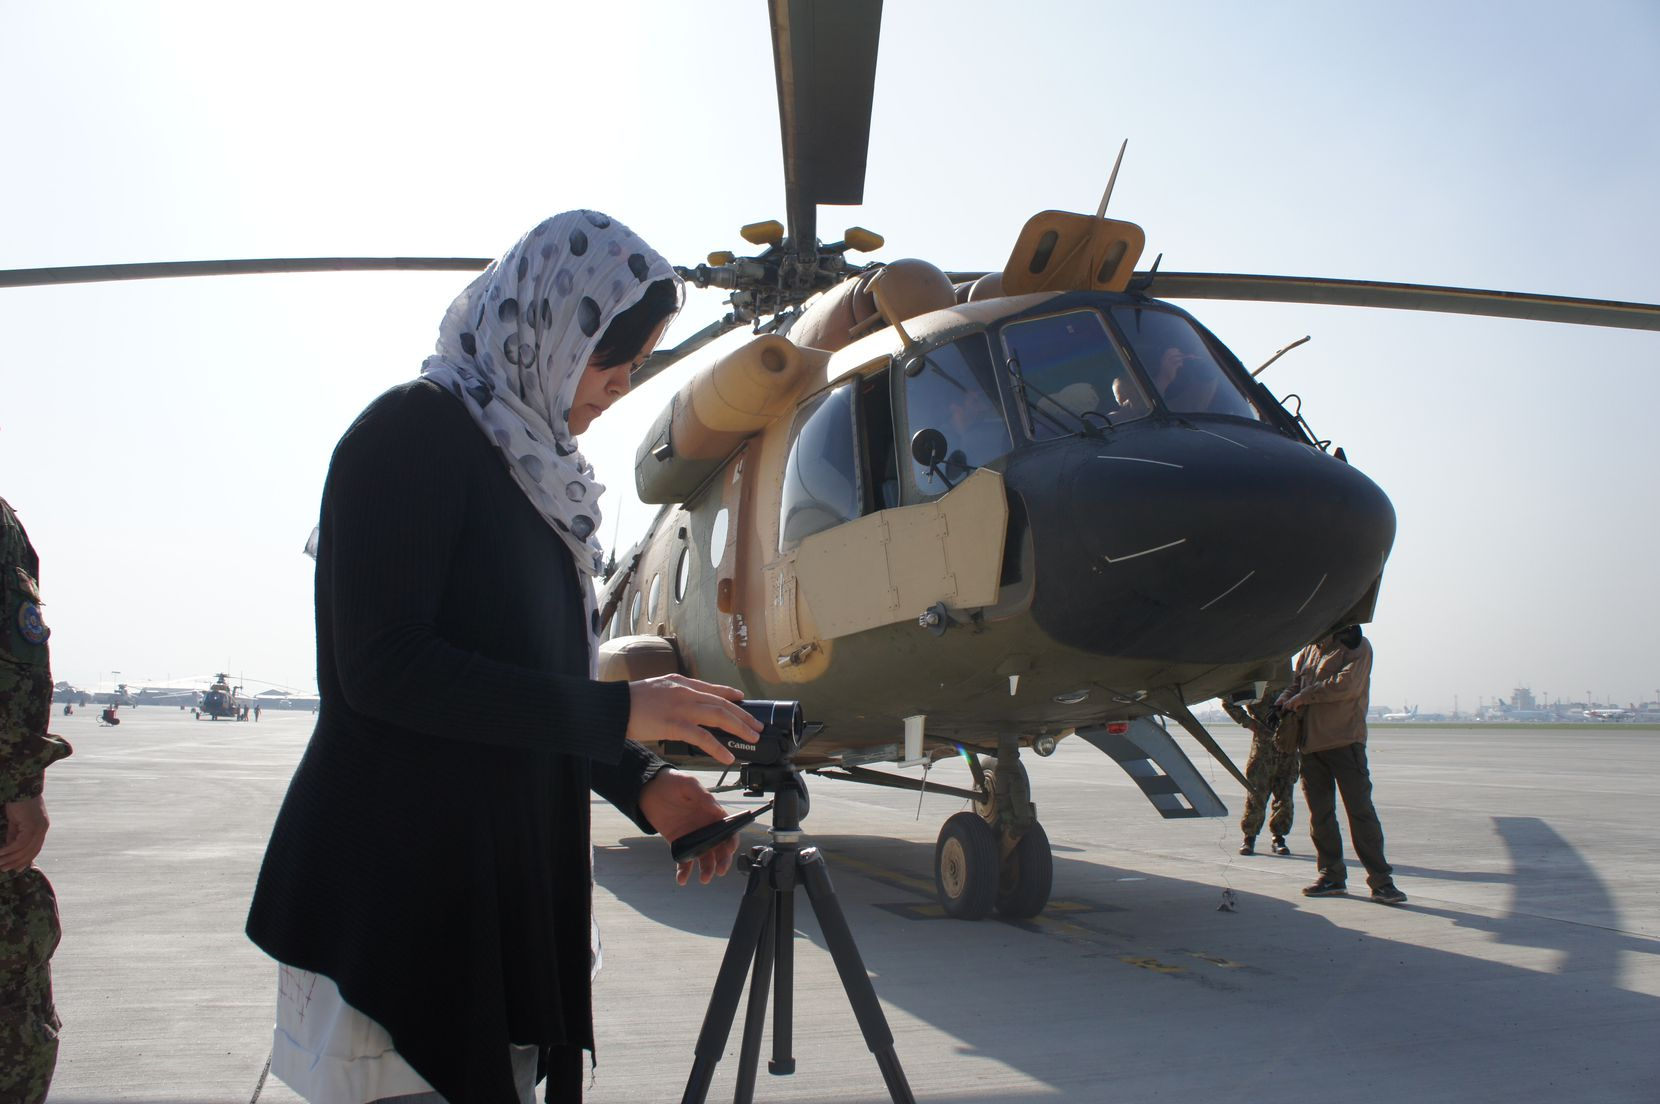 Kubra Jafari owns KJ Productions, which produced documentaries about progress being made in Afghanistan.